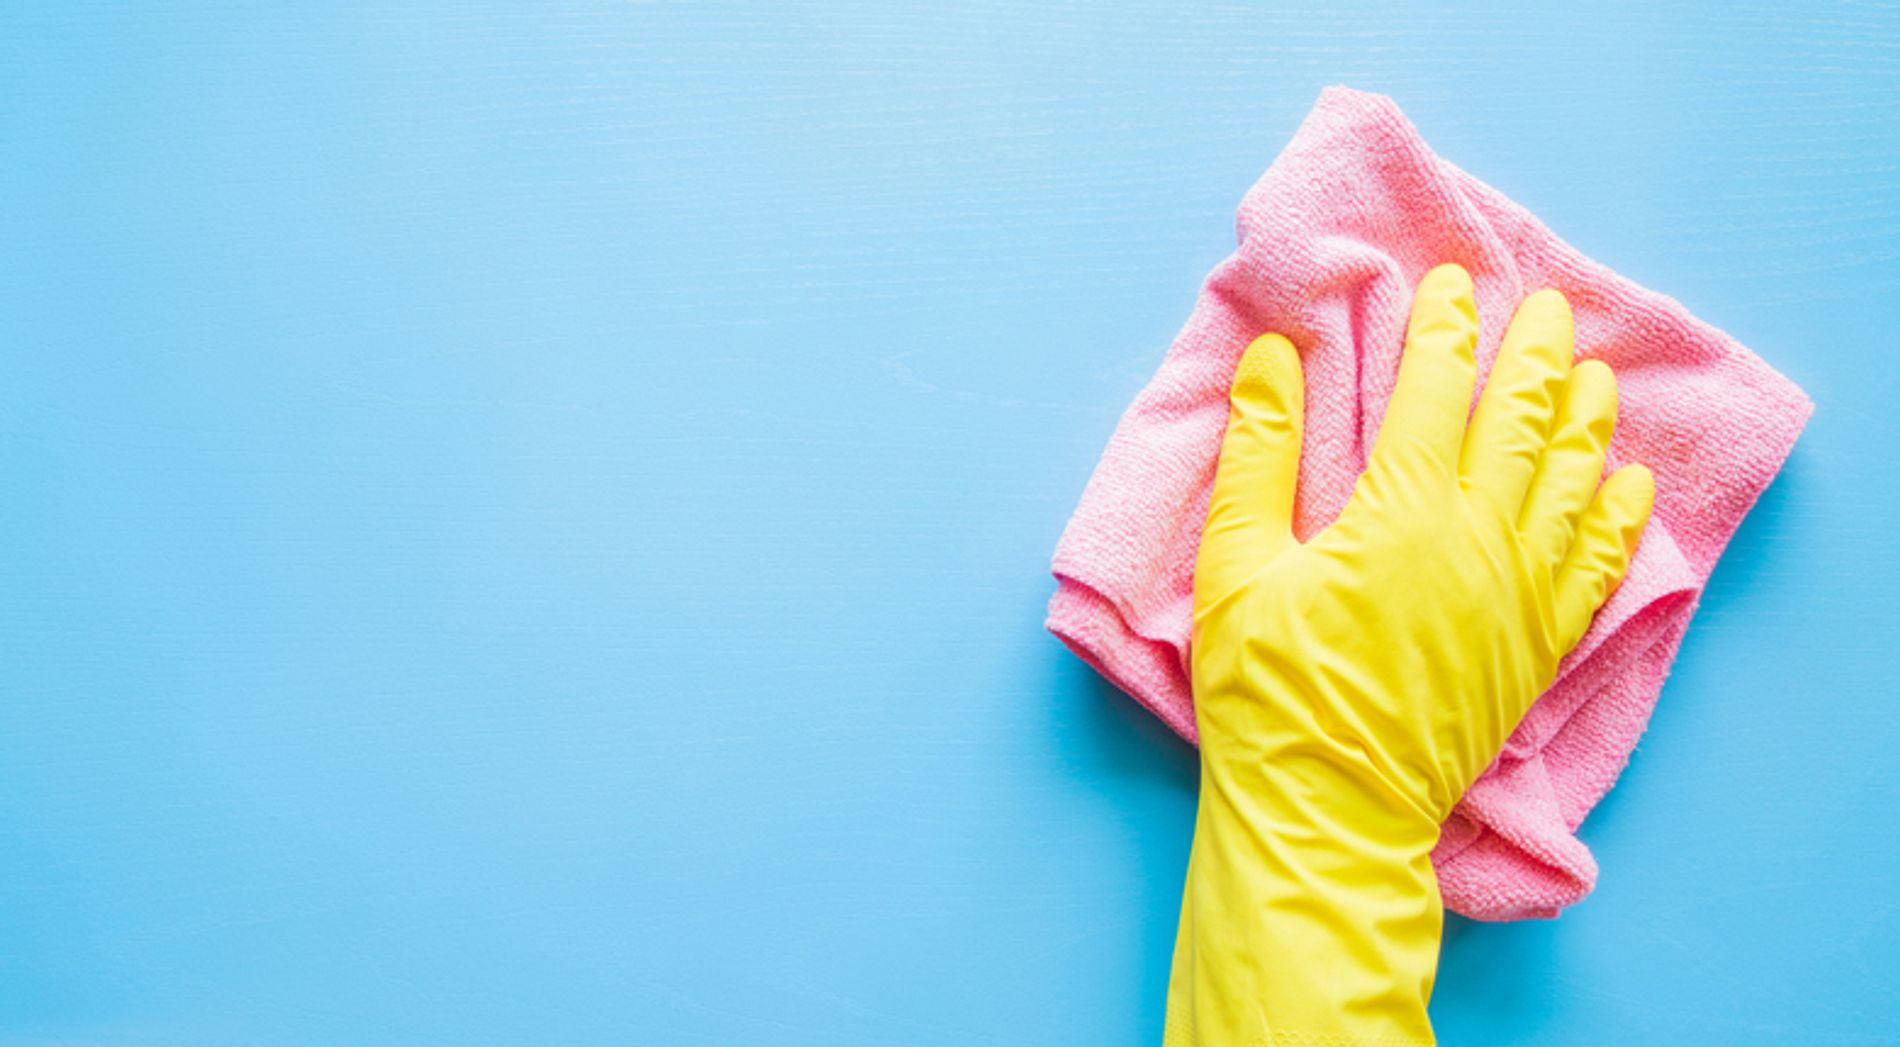 Hand in yellow glove wiping a counter with a towel